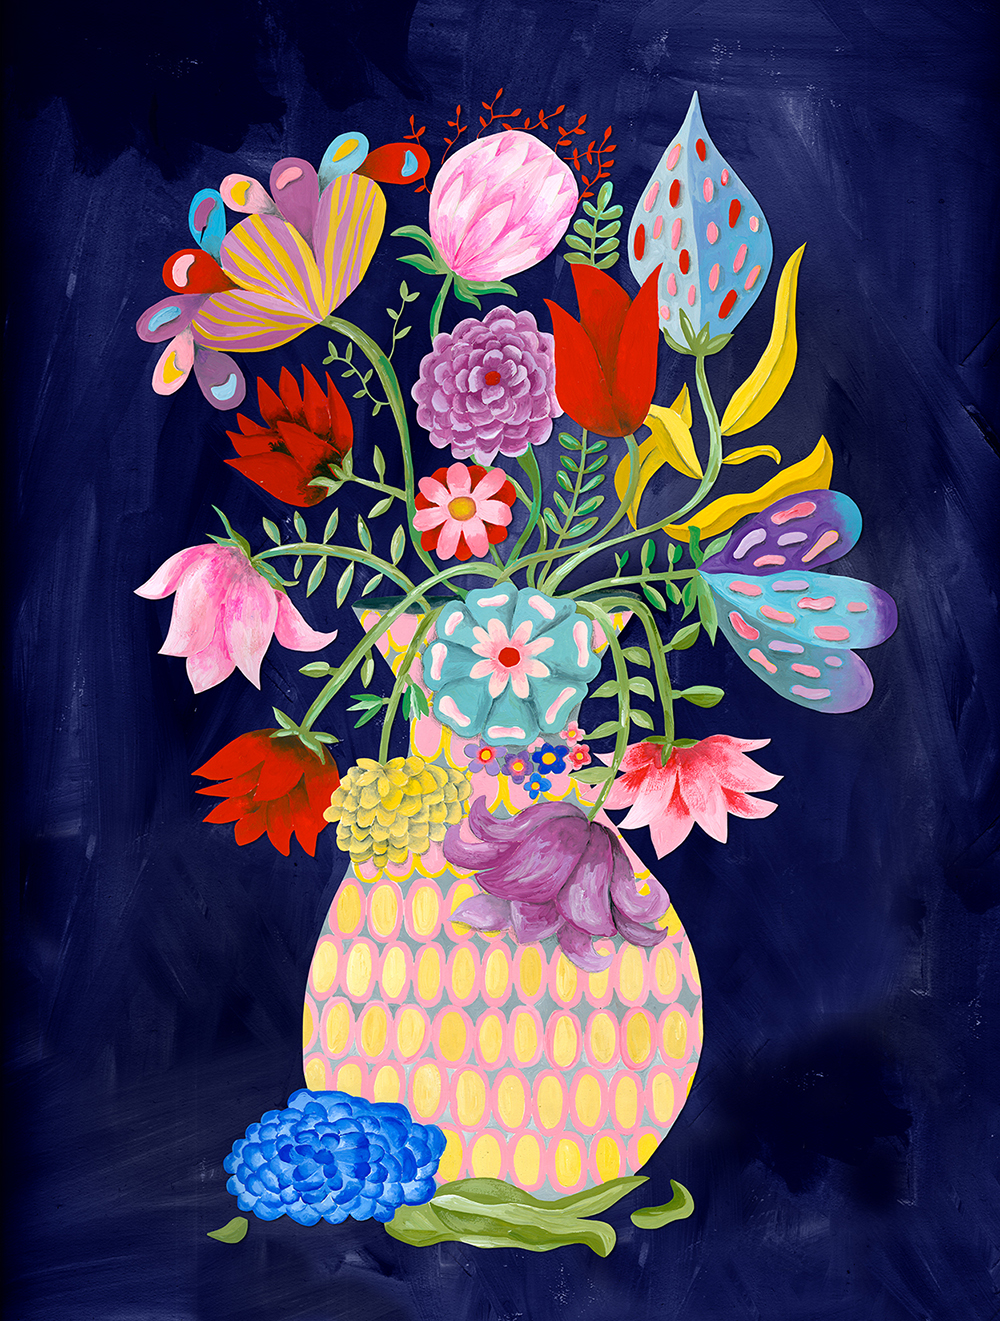 Bouquet of Flowers for Trader Joe's by Marenthe.jpg